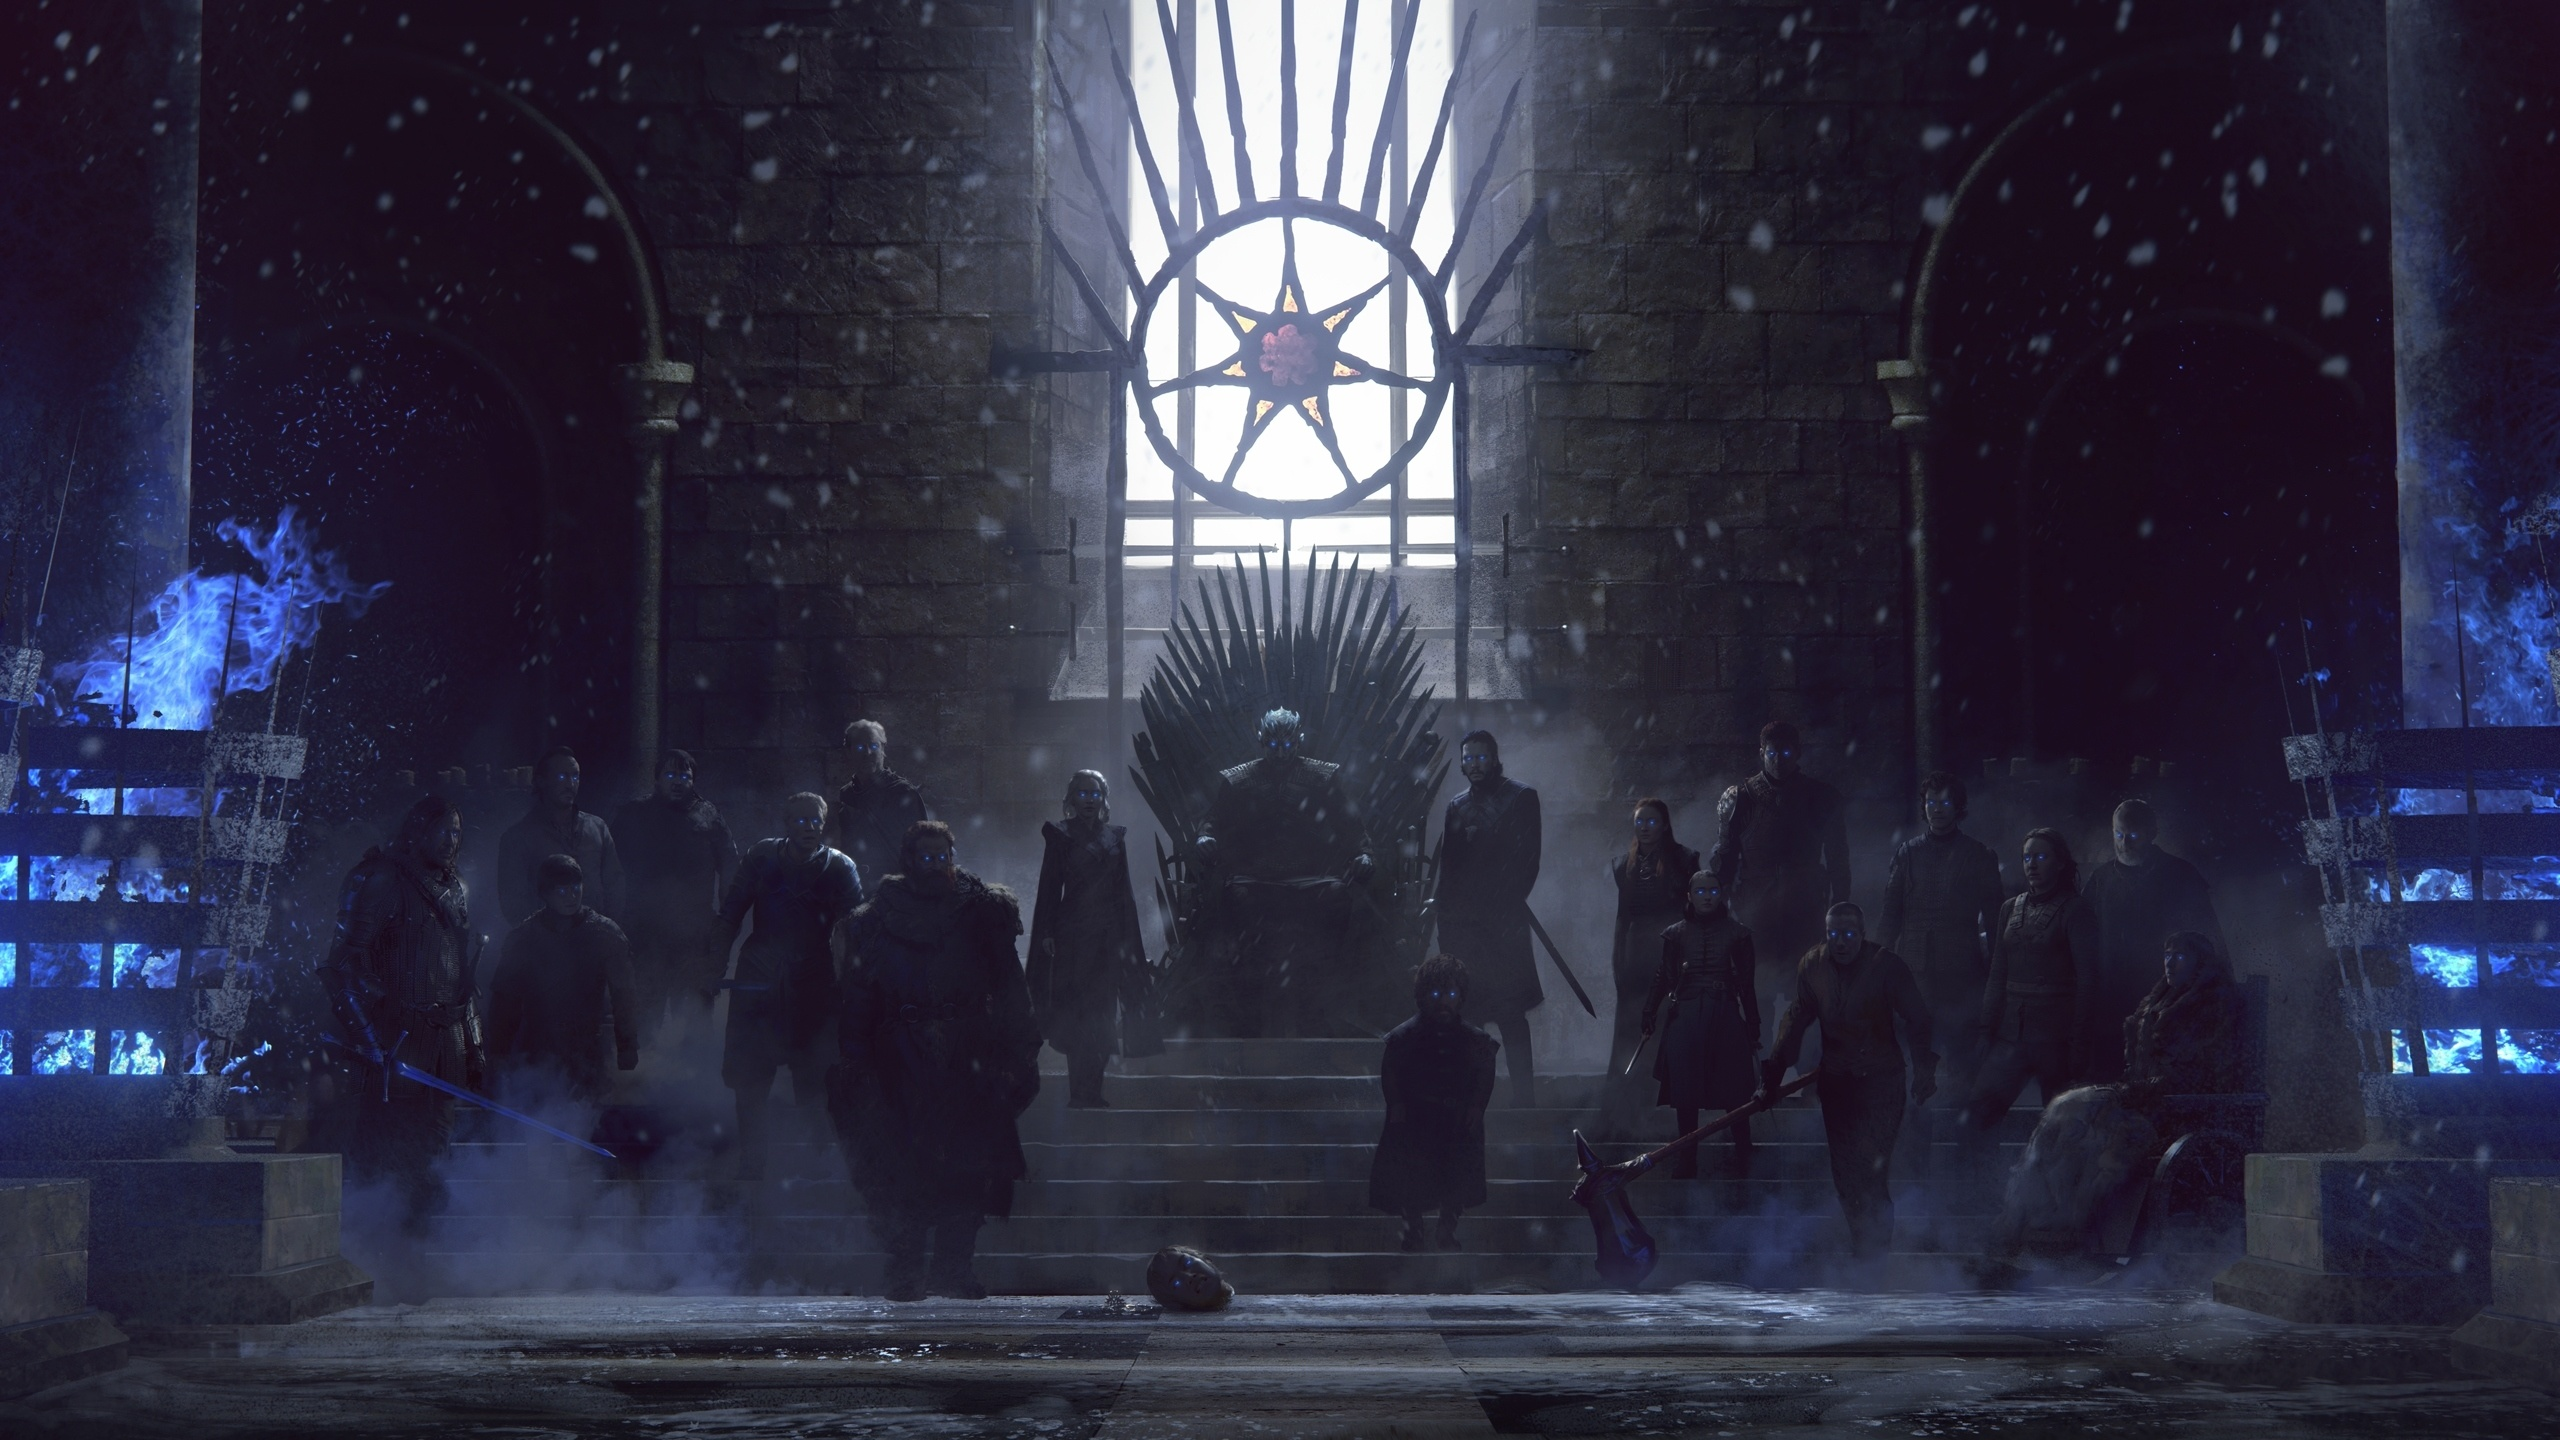 Download 2560x1440 Wallpaper Game Of Thrones Zombies Army Night King Art Dual Wide Widescreen 16 9 Widescreen 2560x1440 Hd Image Background 21451